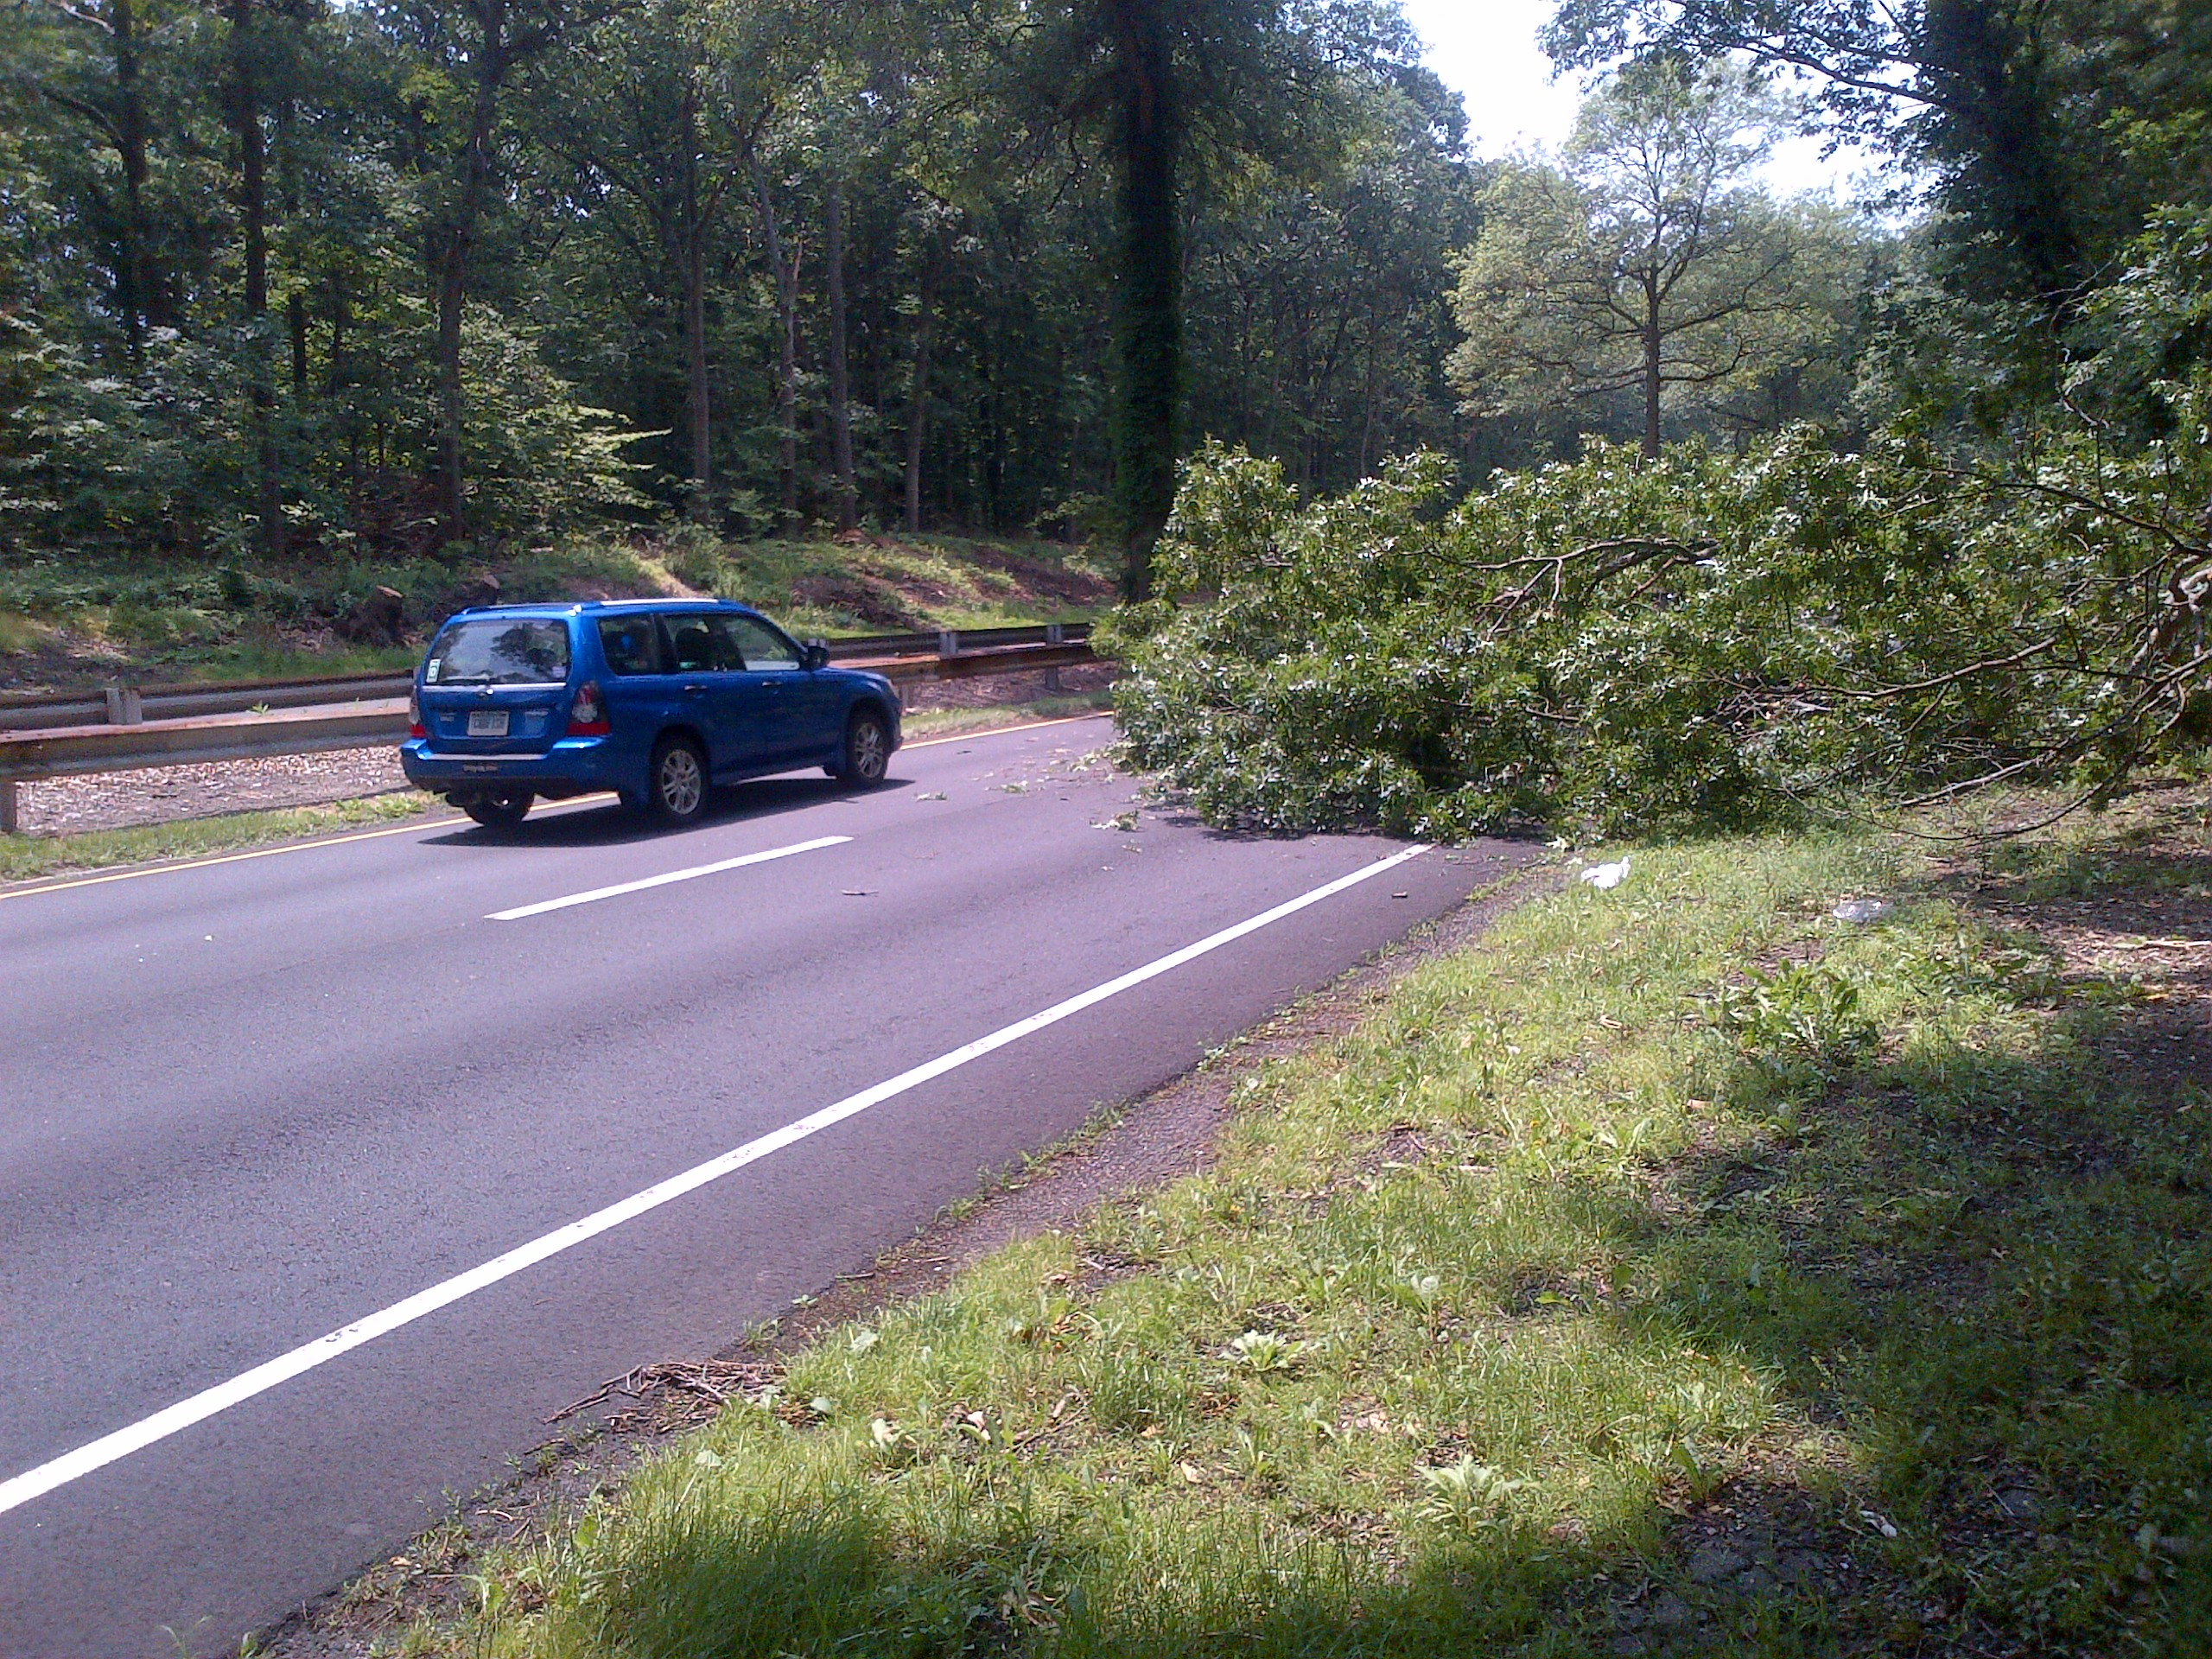 A fallen tree blocks a lane of the Merritt Parkway in Norwalk.